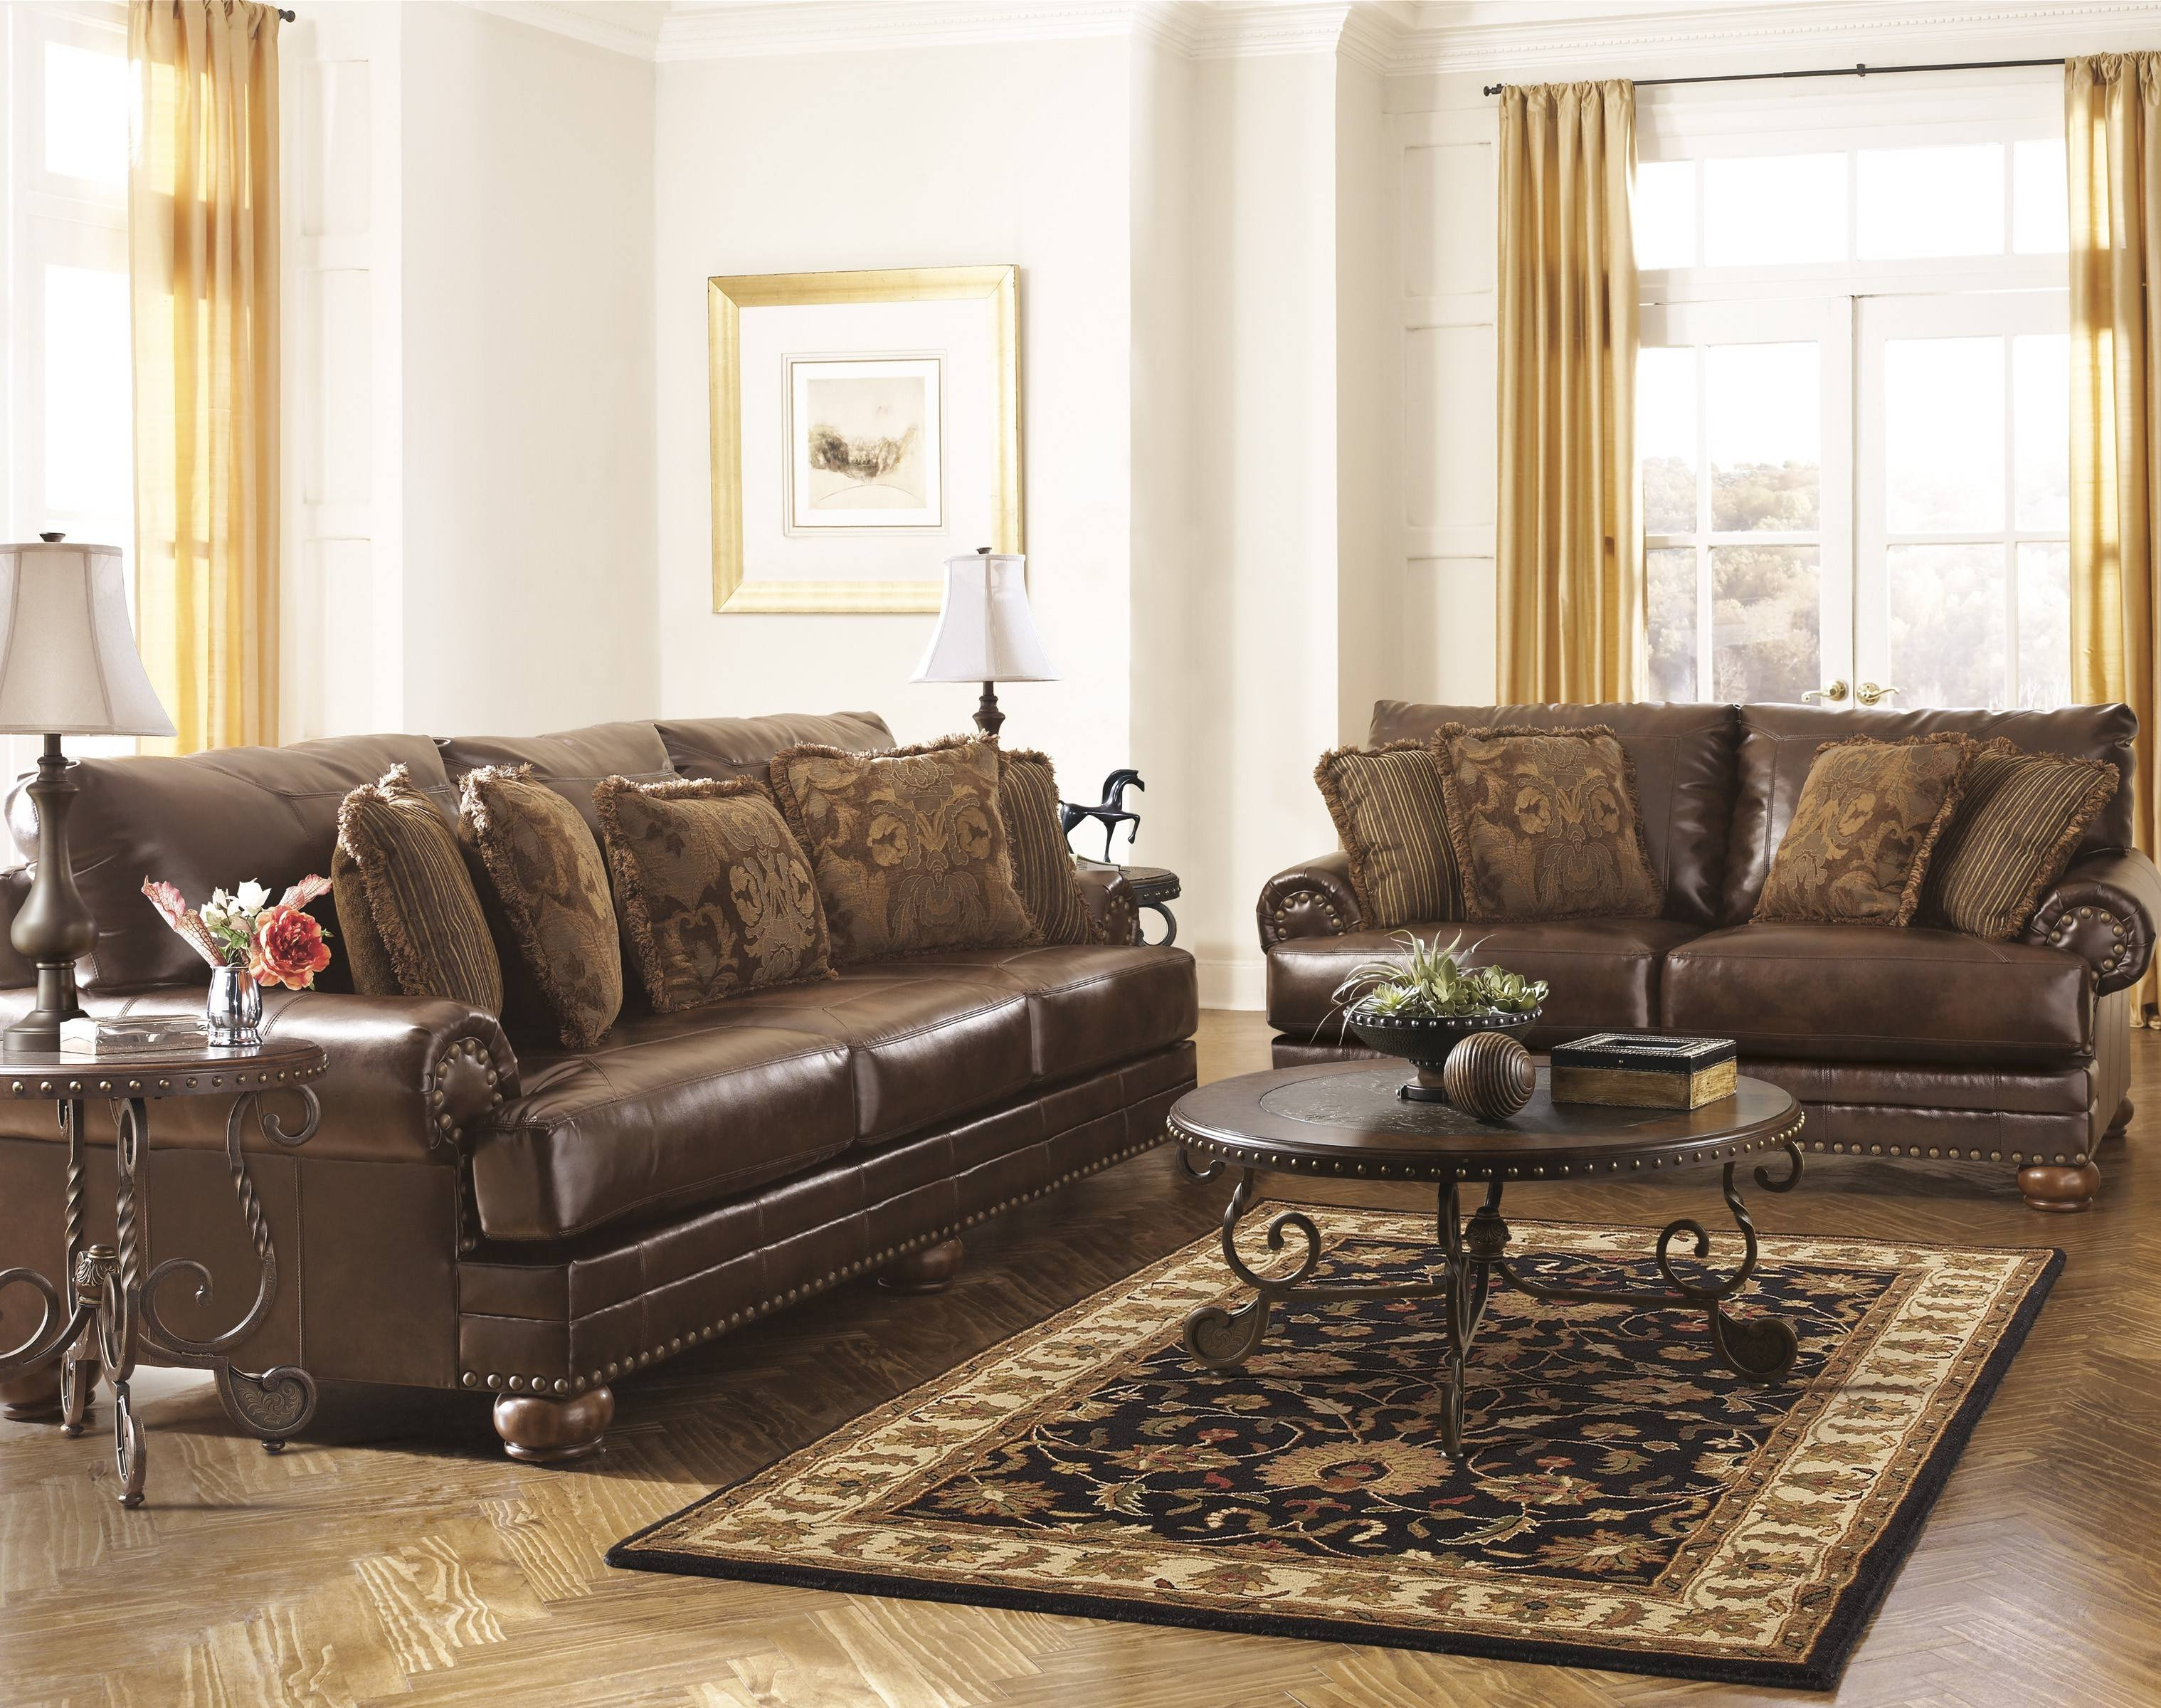 Ashley Brown Leather Durablend Antique Sofaashley Furniture intended for Antique Sofa Chairs (Image 6 of 30)